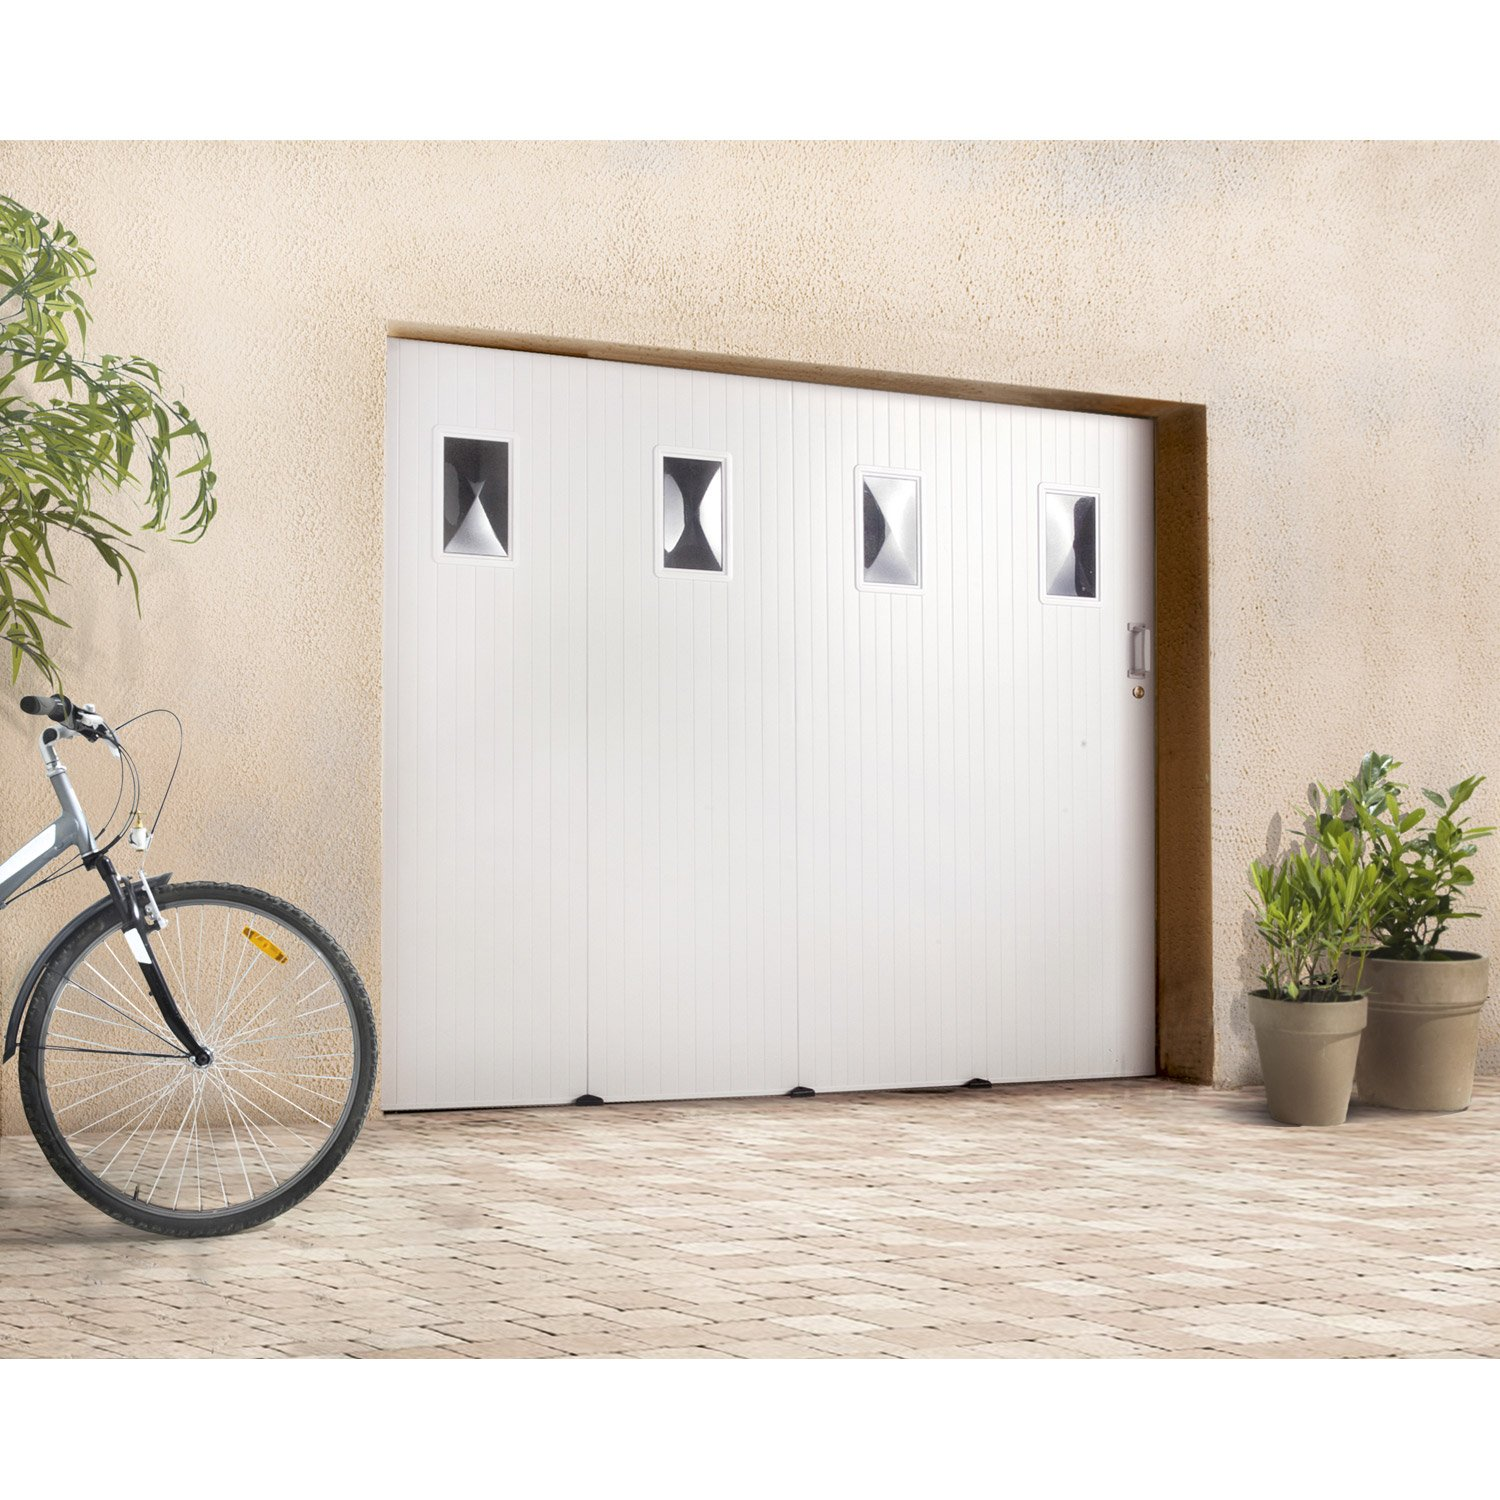 Prix d une porte de garage brico depot isolation id es - Porte garage sectionnelle brico depot ...